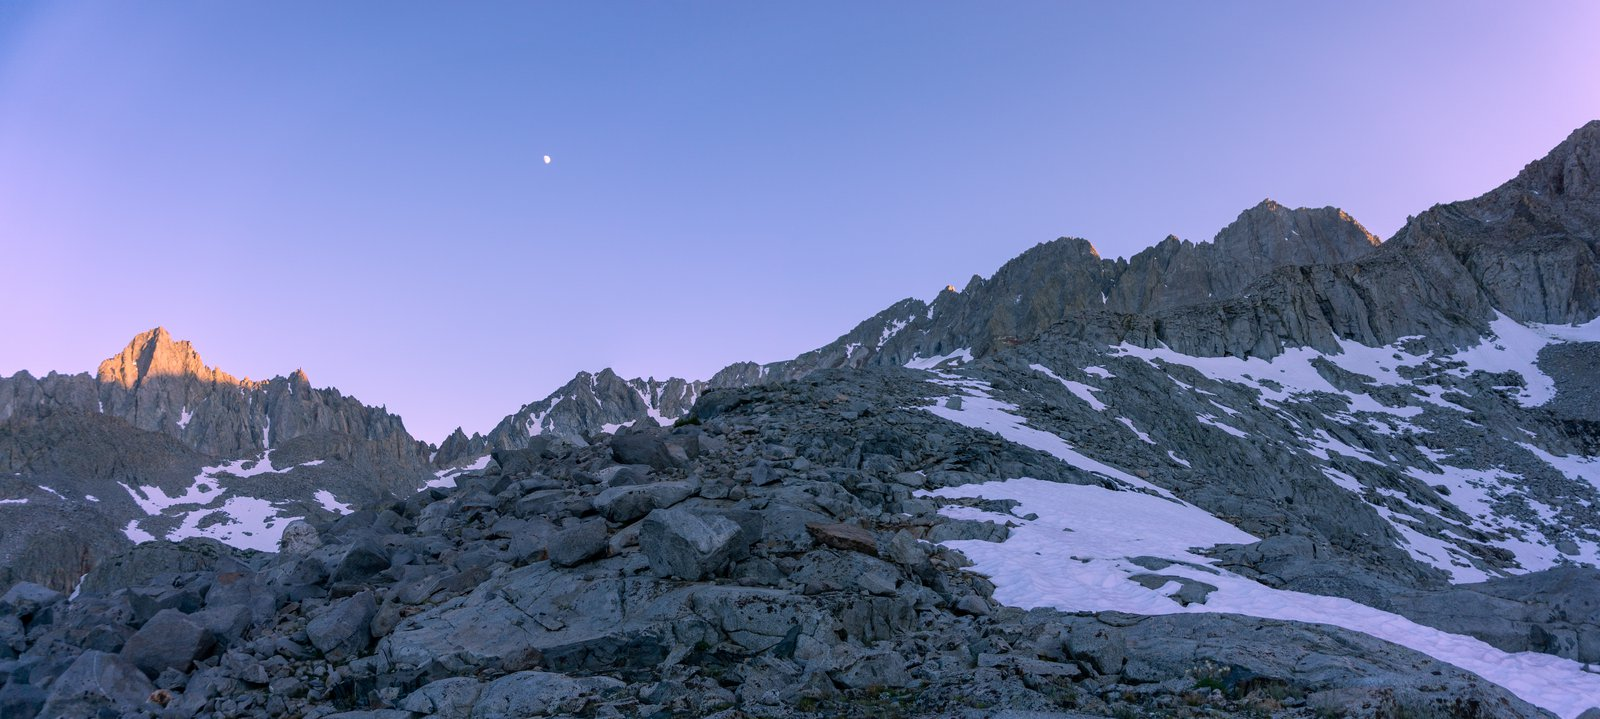 Photo of the high Sierra crest peaks with the moon above, and a little bit of remaining alpenglow on the highest peak and a patchy snow apron at dusk.